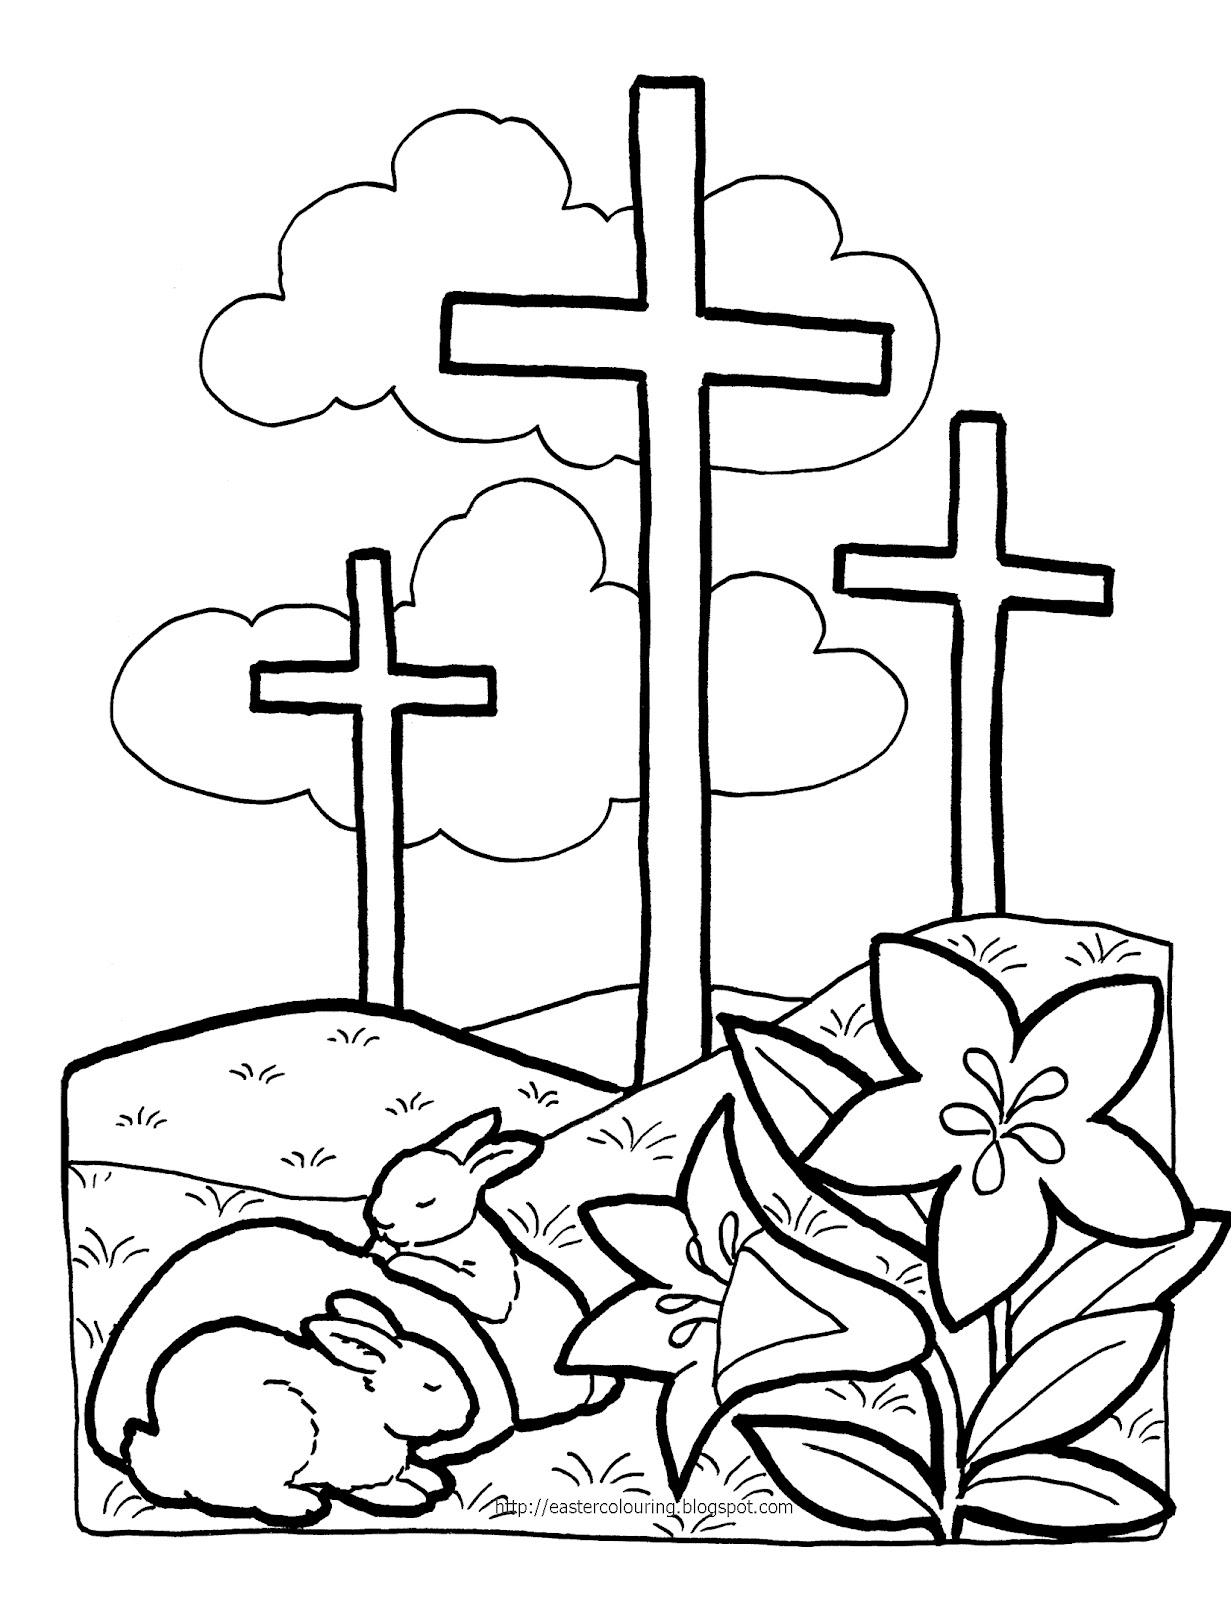 Easter Colouring Religious Easter Coloring Pages Christian Coloring Pages Free